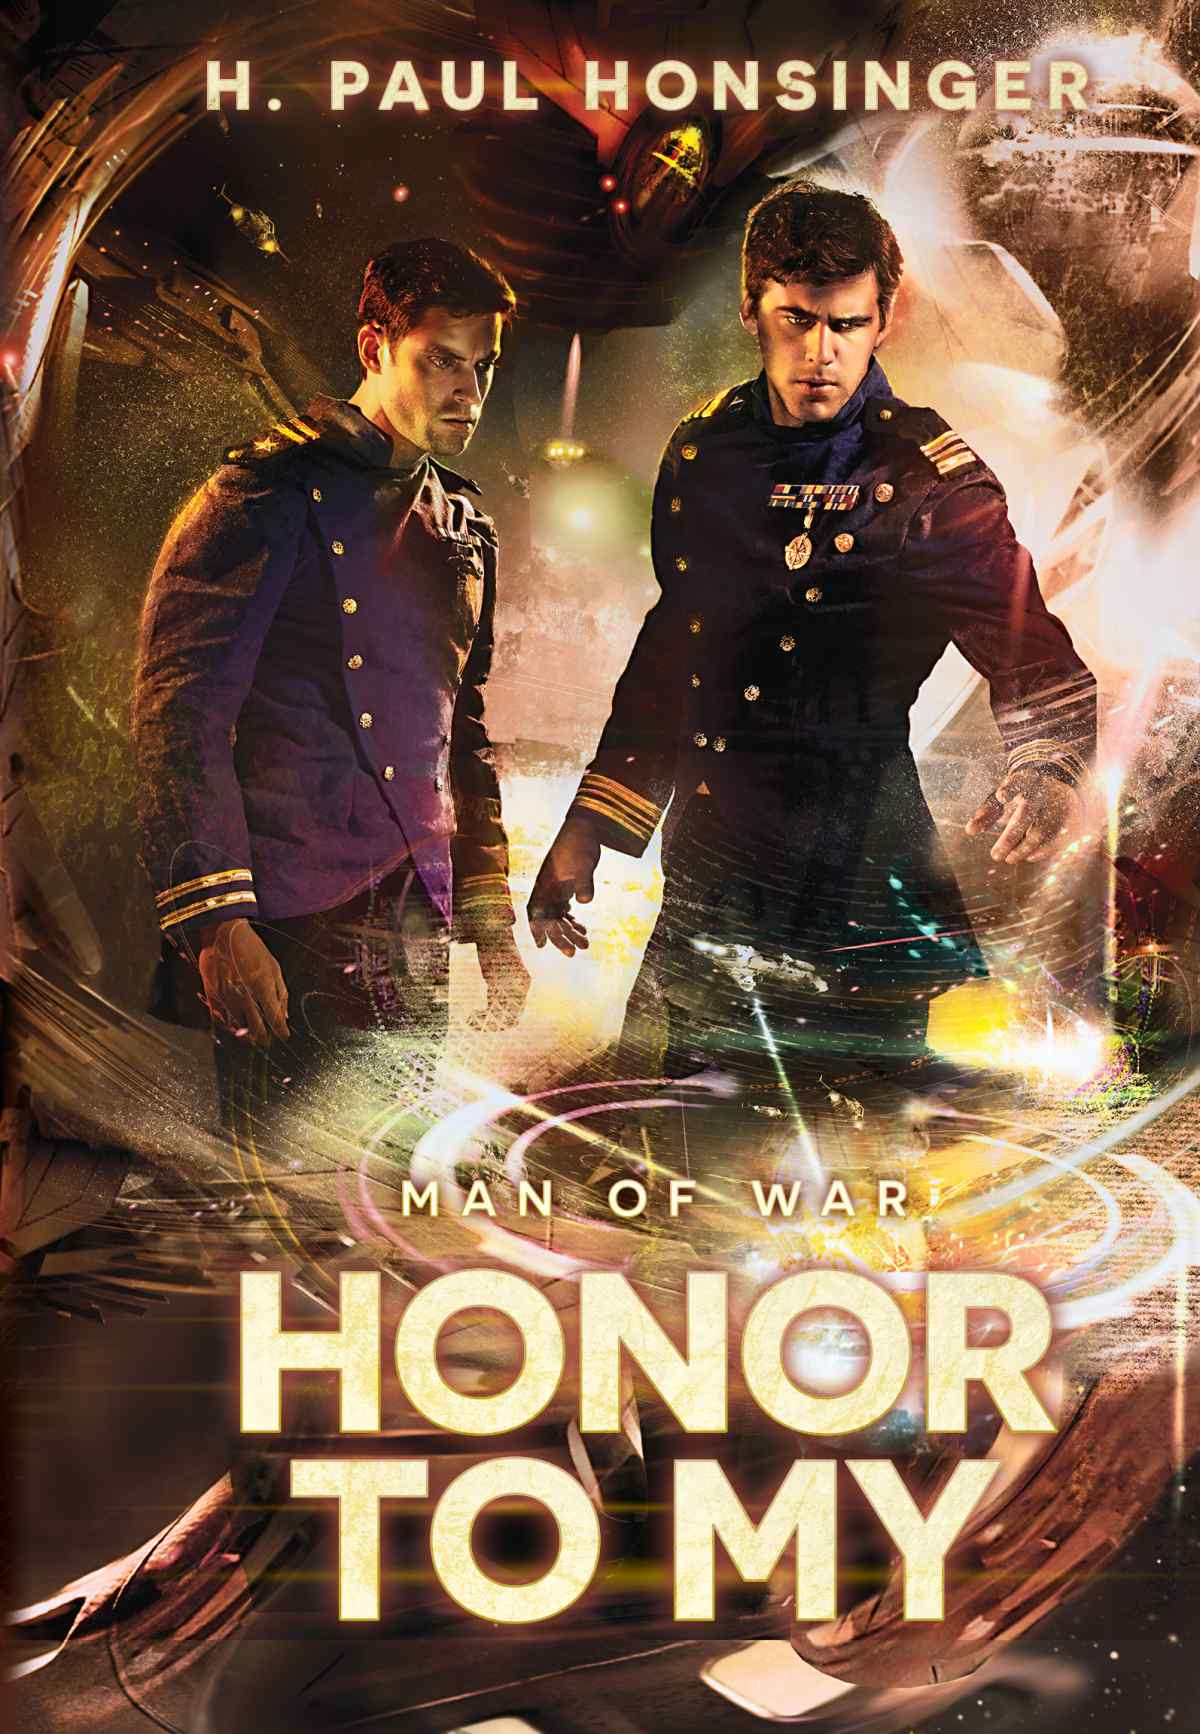 Man of War. Tom 2: Honor to my - Ebook (Książka EPUB) do pobrania w formacie EPUB